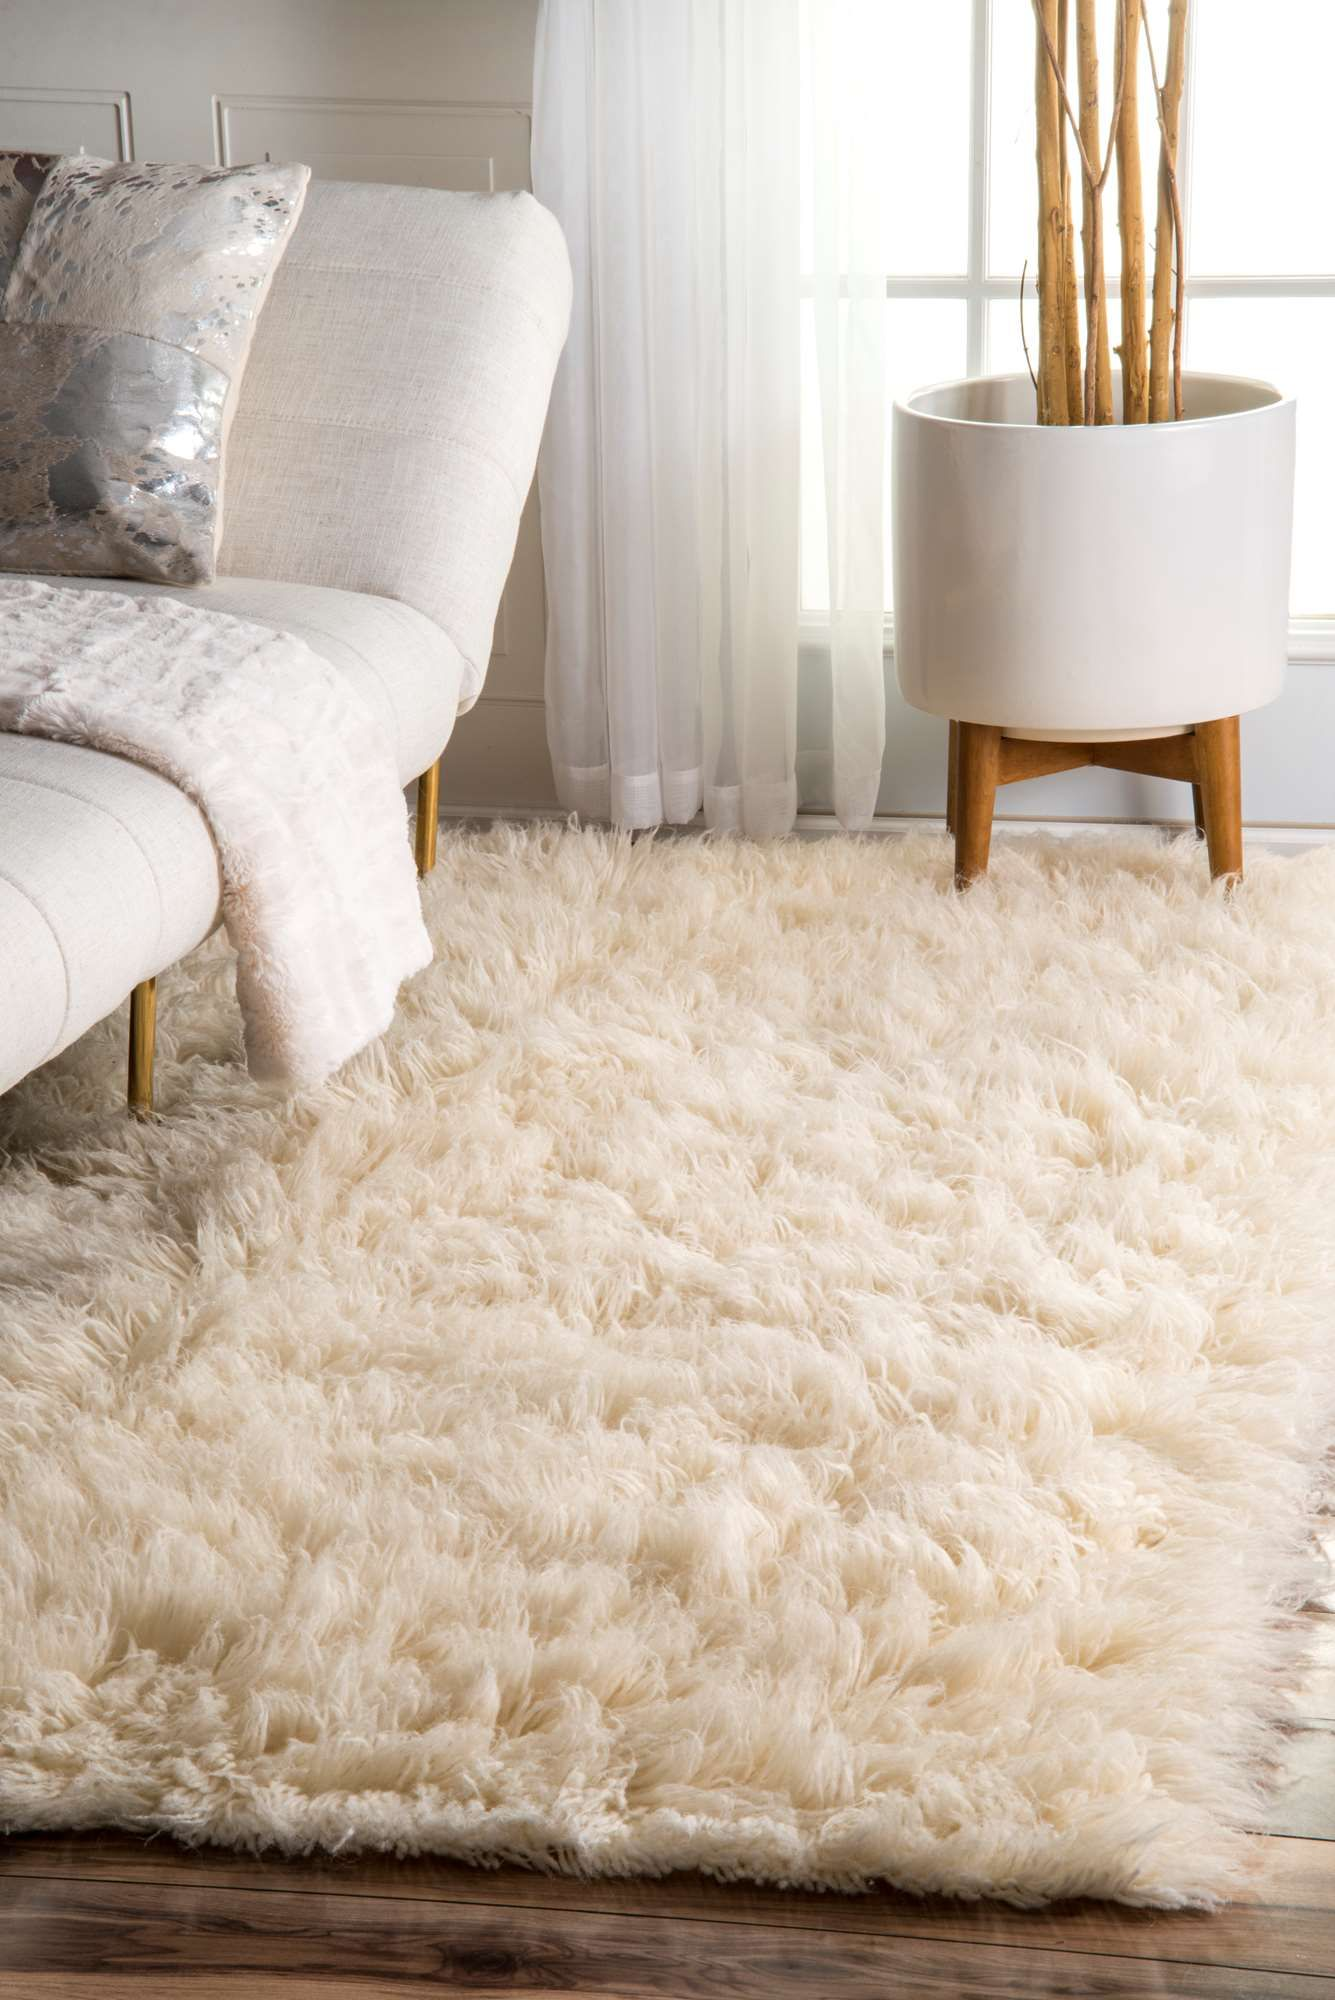 Rugs Usa Area In Many Styles Including Contemporary Braided Outdoor And Flokati At America S Home Decorating Superarea